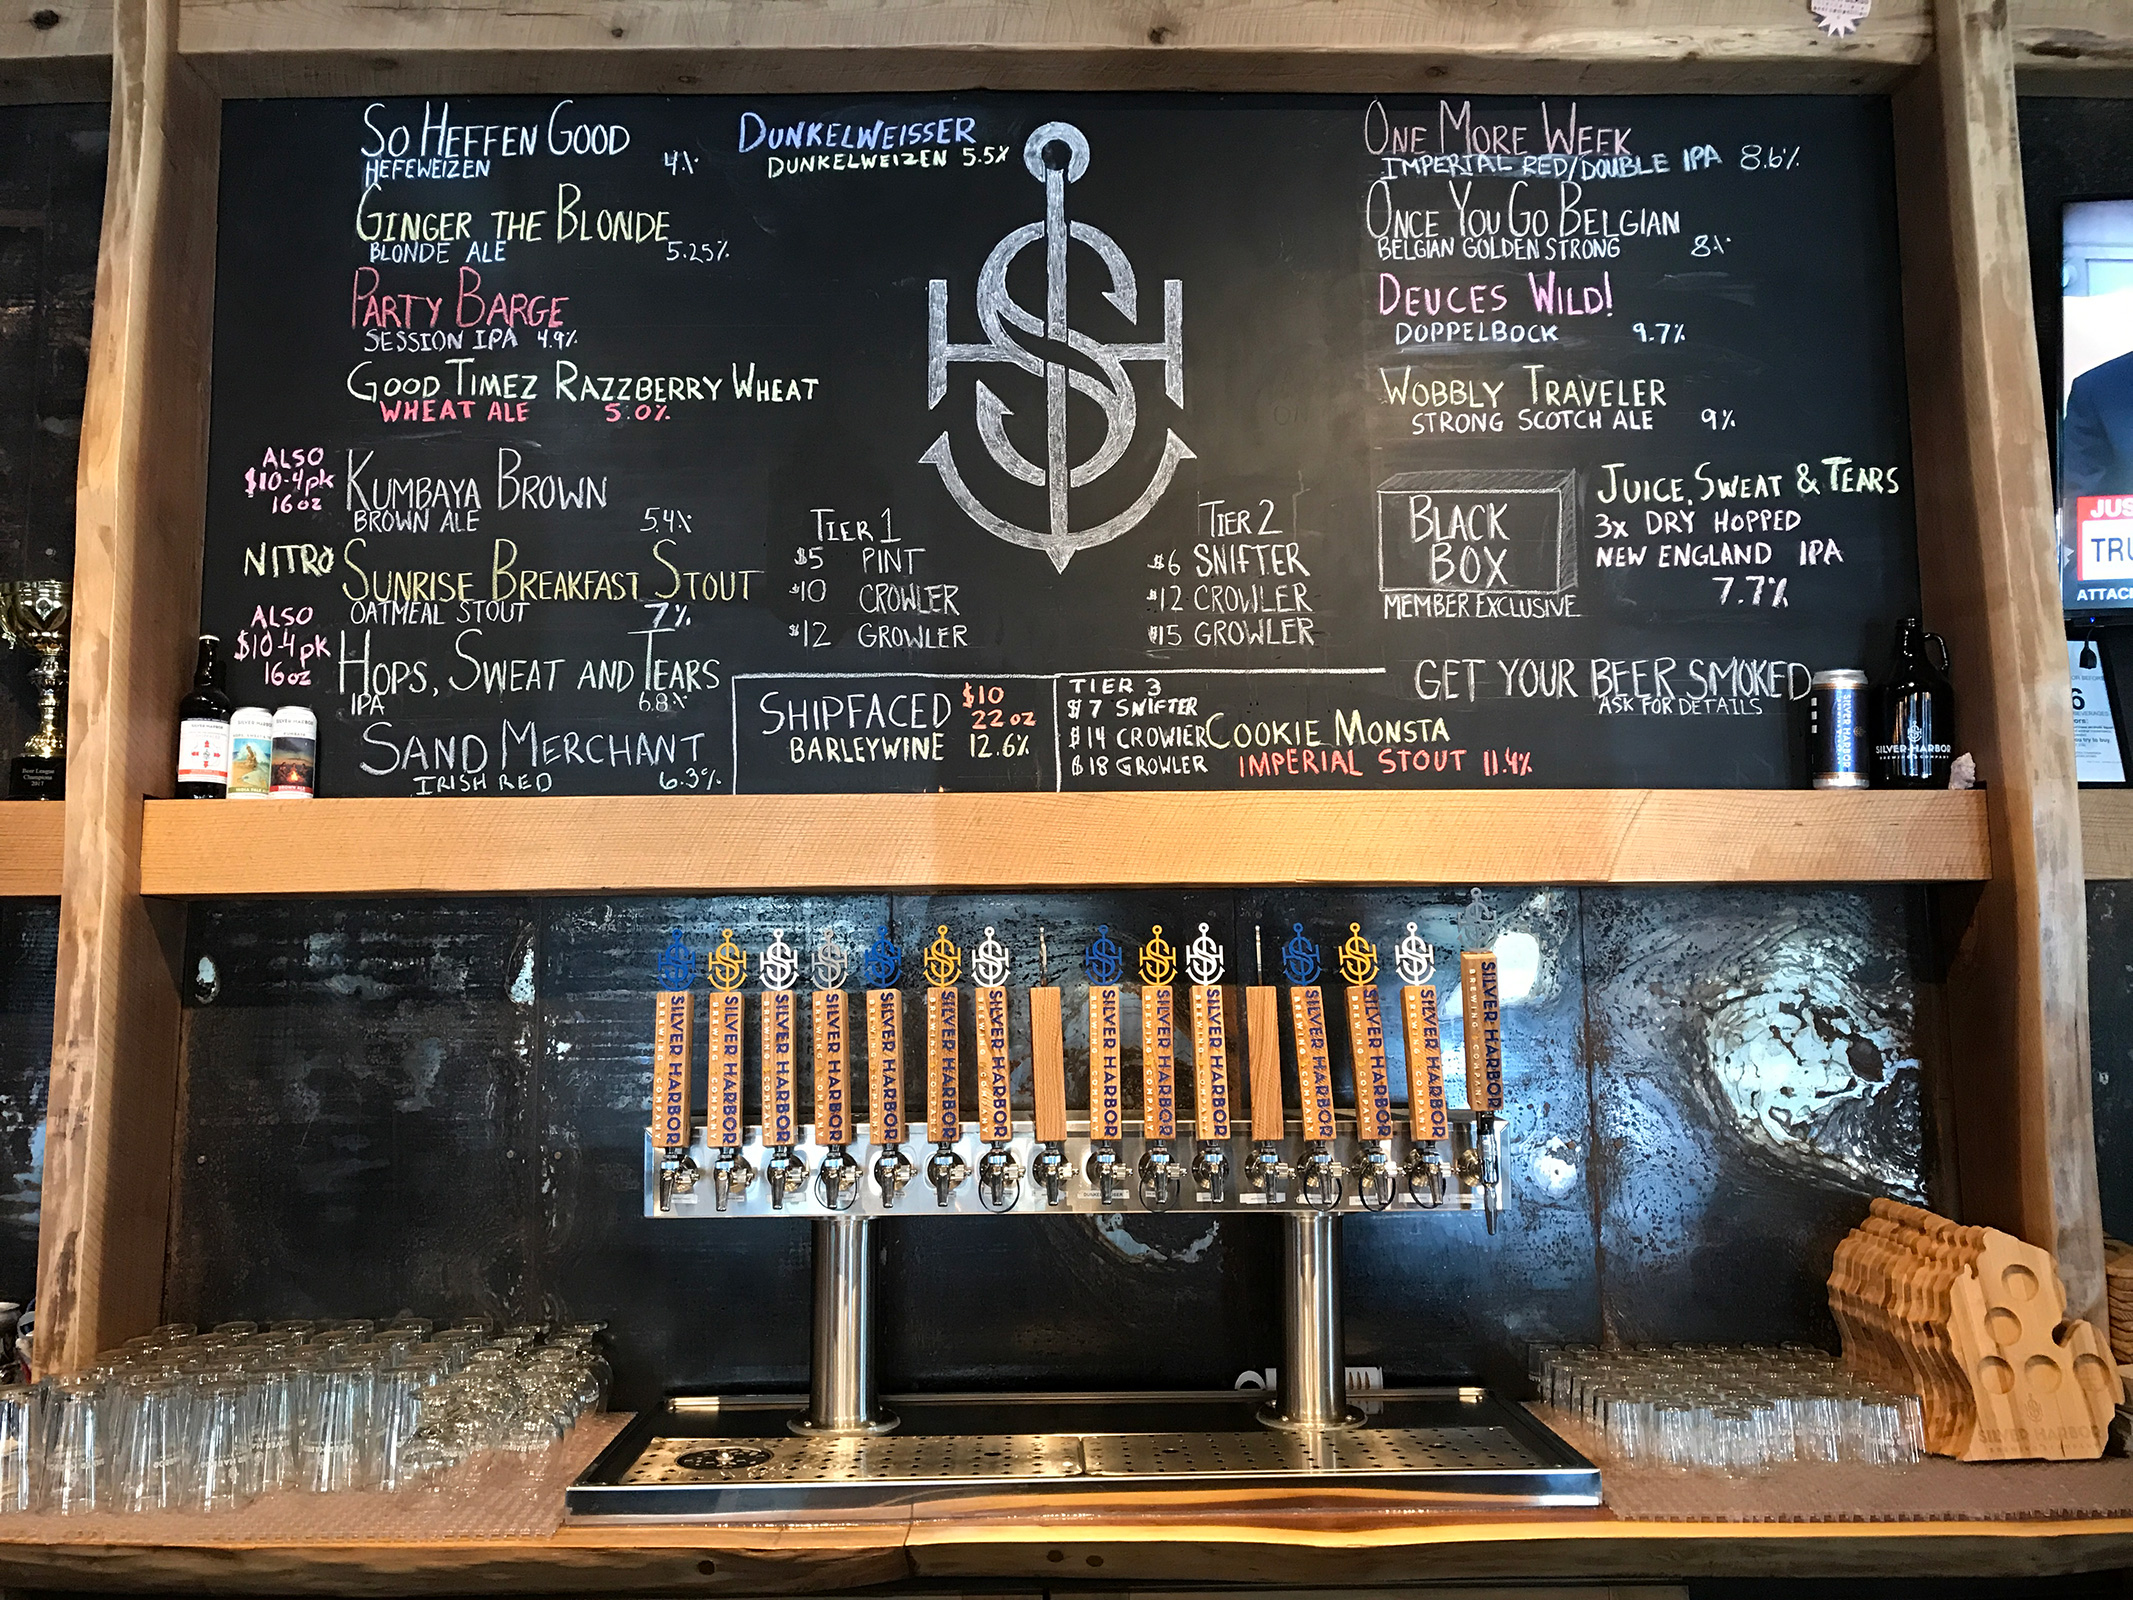 Silver Harbor Brewing Co. in St. Joseph, Michigan by Jets Like Taxis / Hopsmash